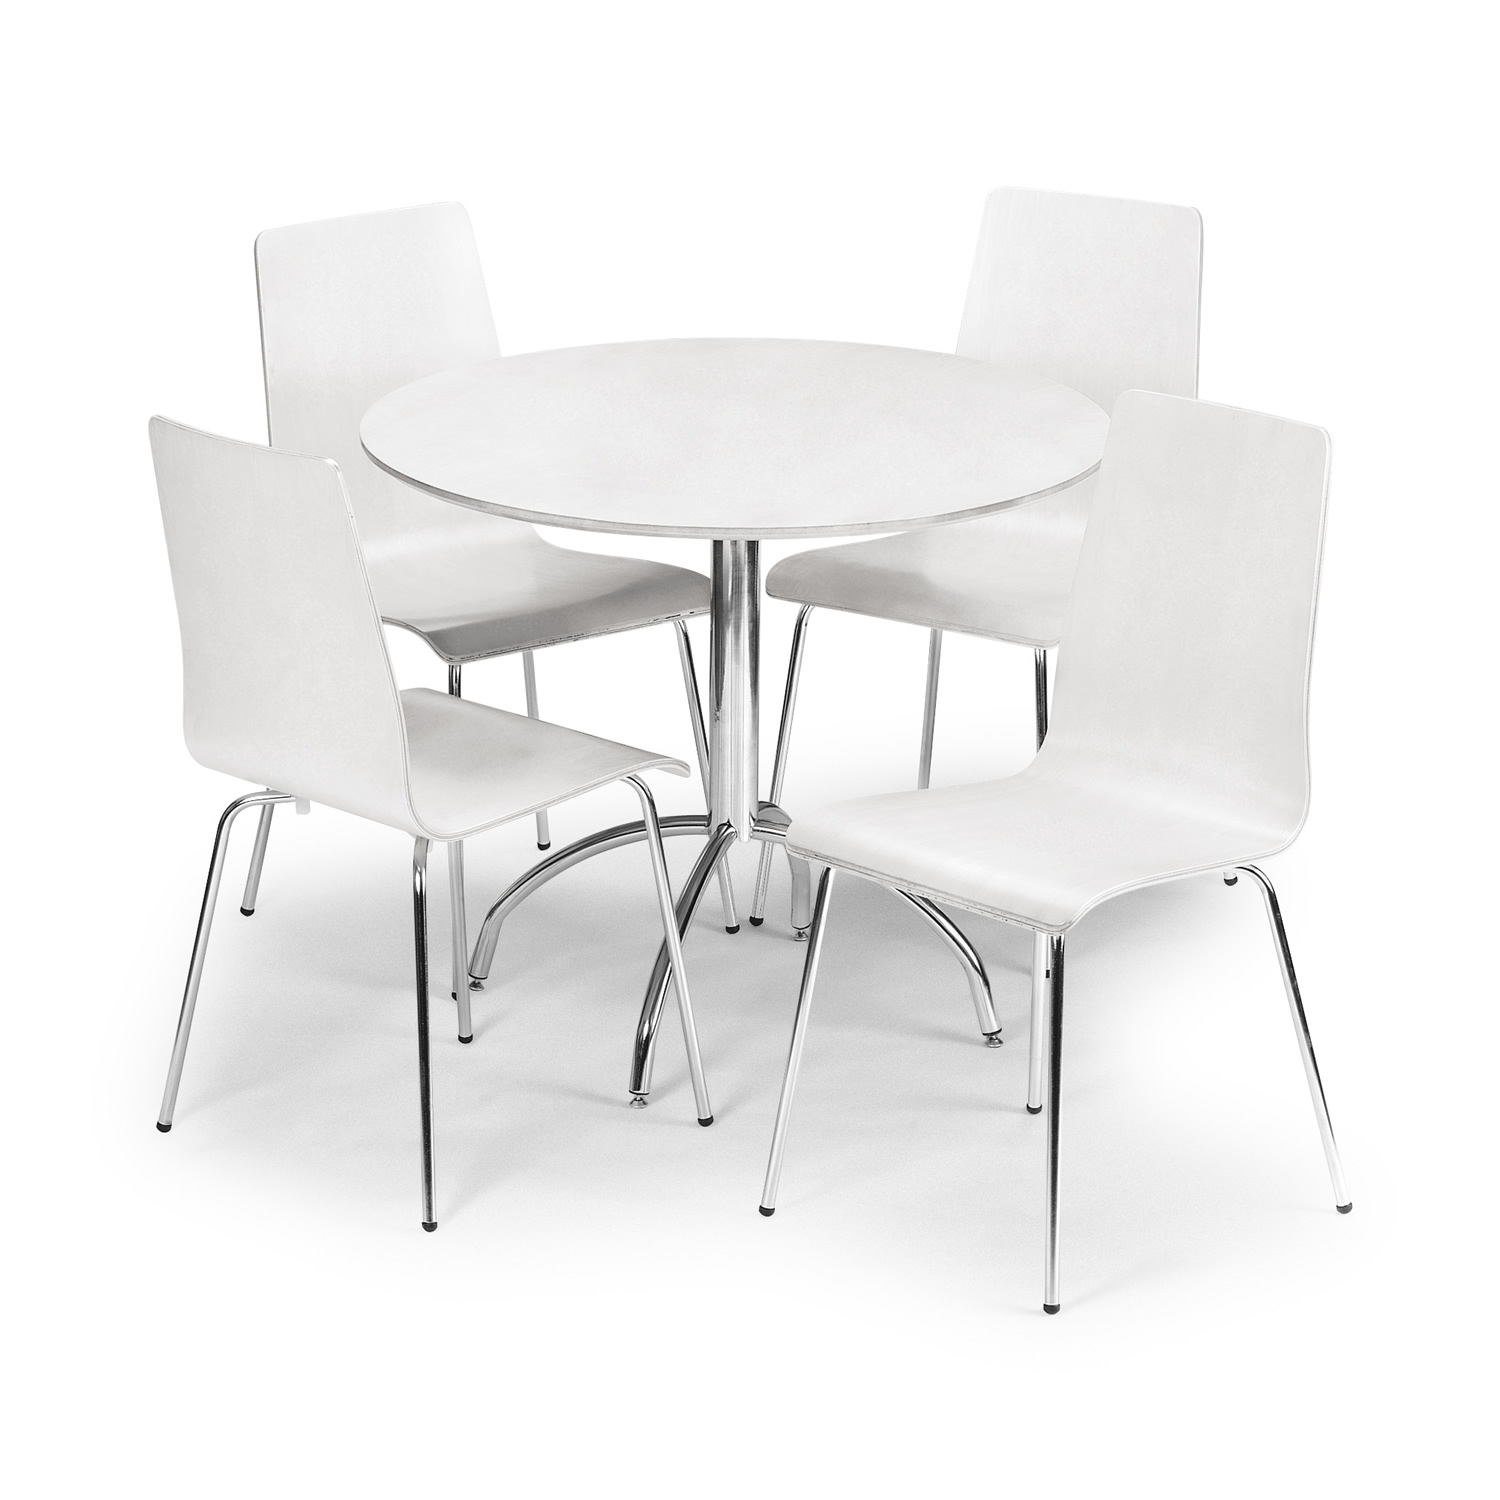 Beautiful white round kitchen table and chairs homesfeed for Round dining table and chairs